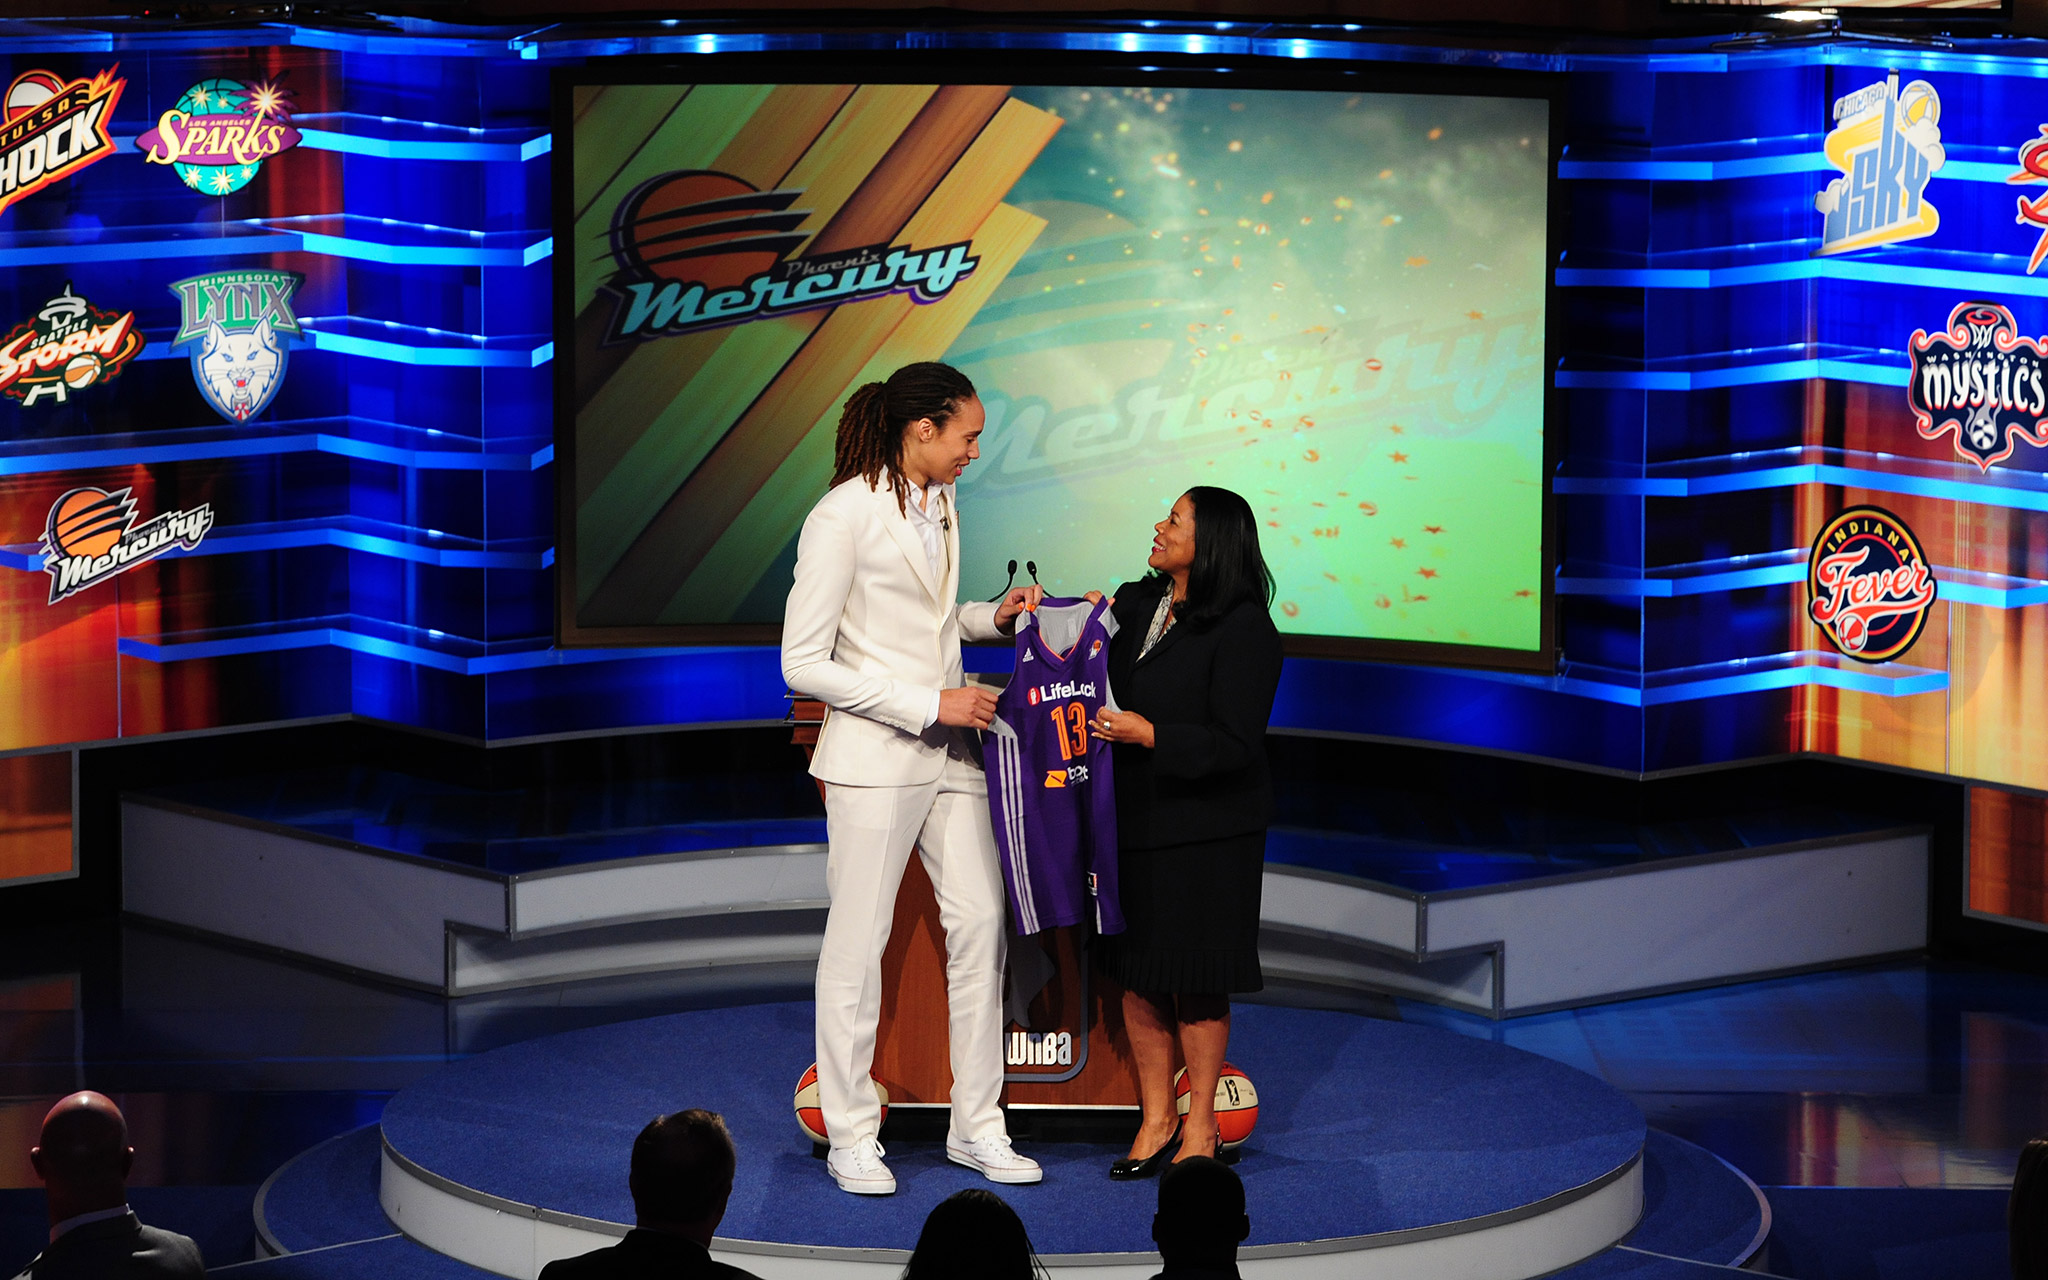 Brittney Griner was the No. 1 pick in the April WNBA draft, and knew right away that she had a mentor in Phoenix. I'm ready to get there and ready to learn from [Taurasi], Griner said on draft night. I got to play with her a little bit at USA Basketbal